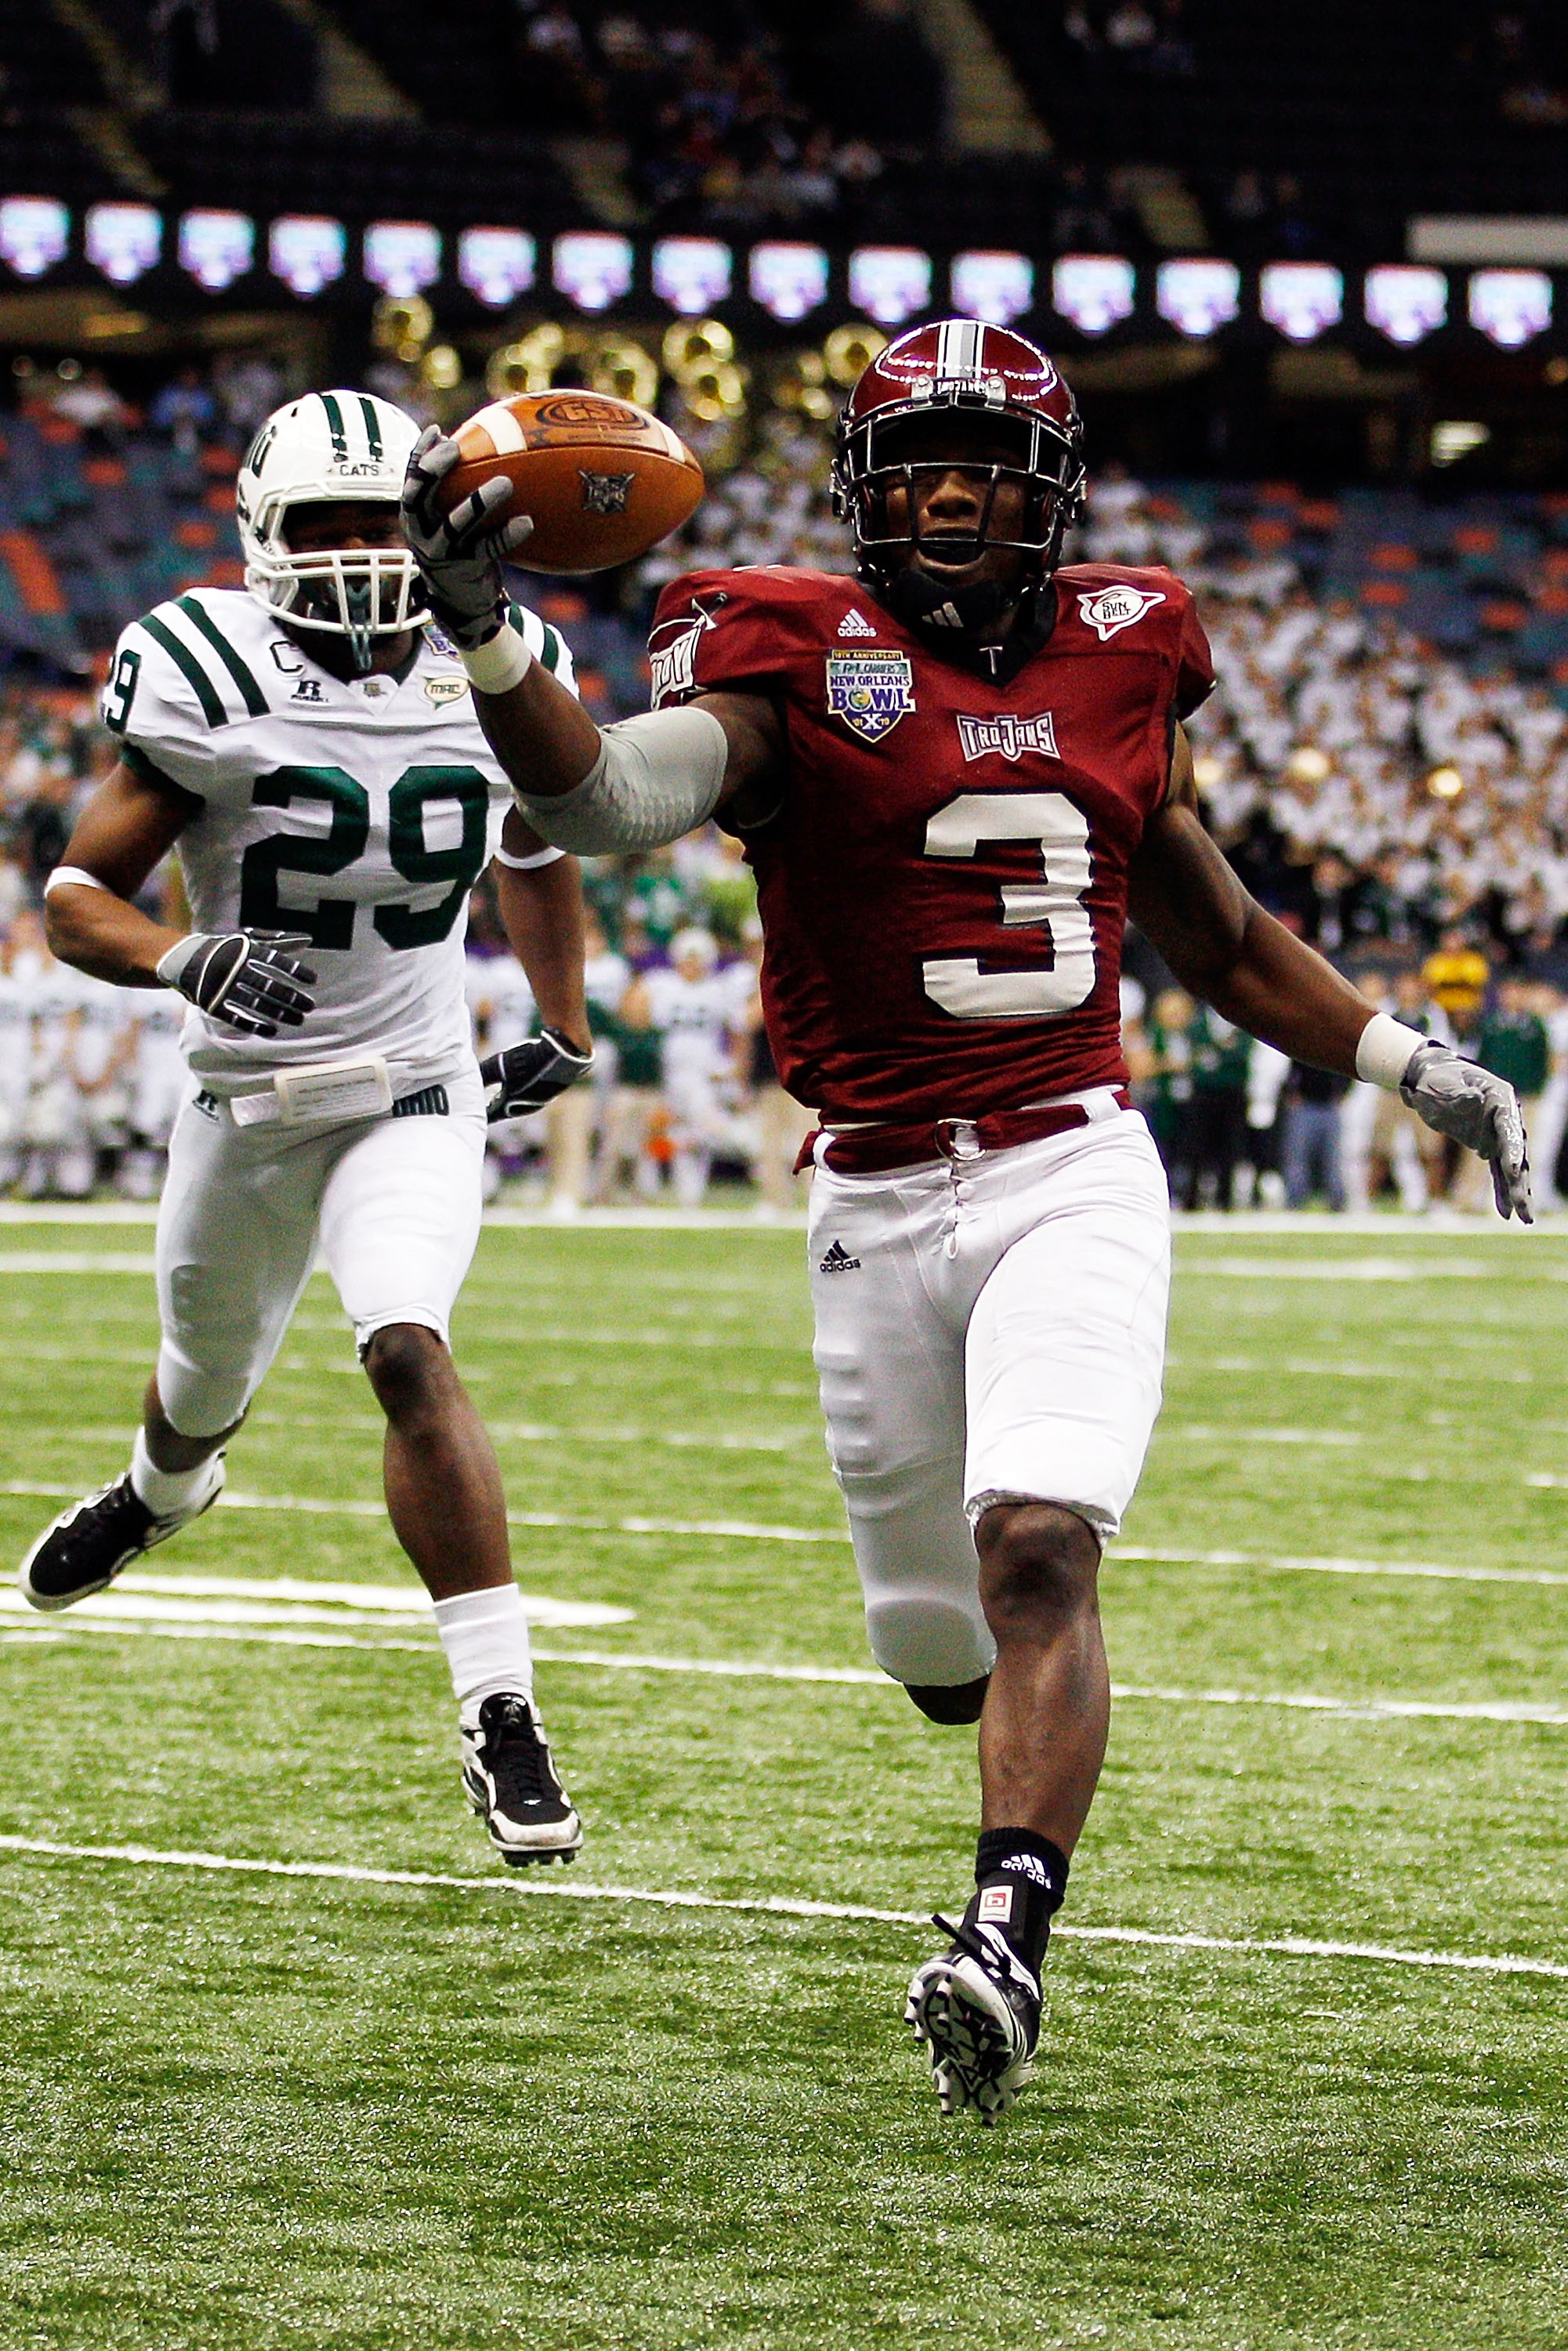 NEW ORLEANS, LA - DECEMBER 18:  Jerrel Jernigan #3 of the Troy University Trojans scores a touchdown over Donovan Fletcher #29 of the Ohio University Bobcats during the R&L Carriers New Orleans Bowl at the Louisiana Superdome on December 18, 2010 in New O